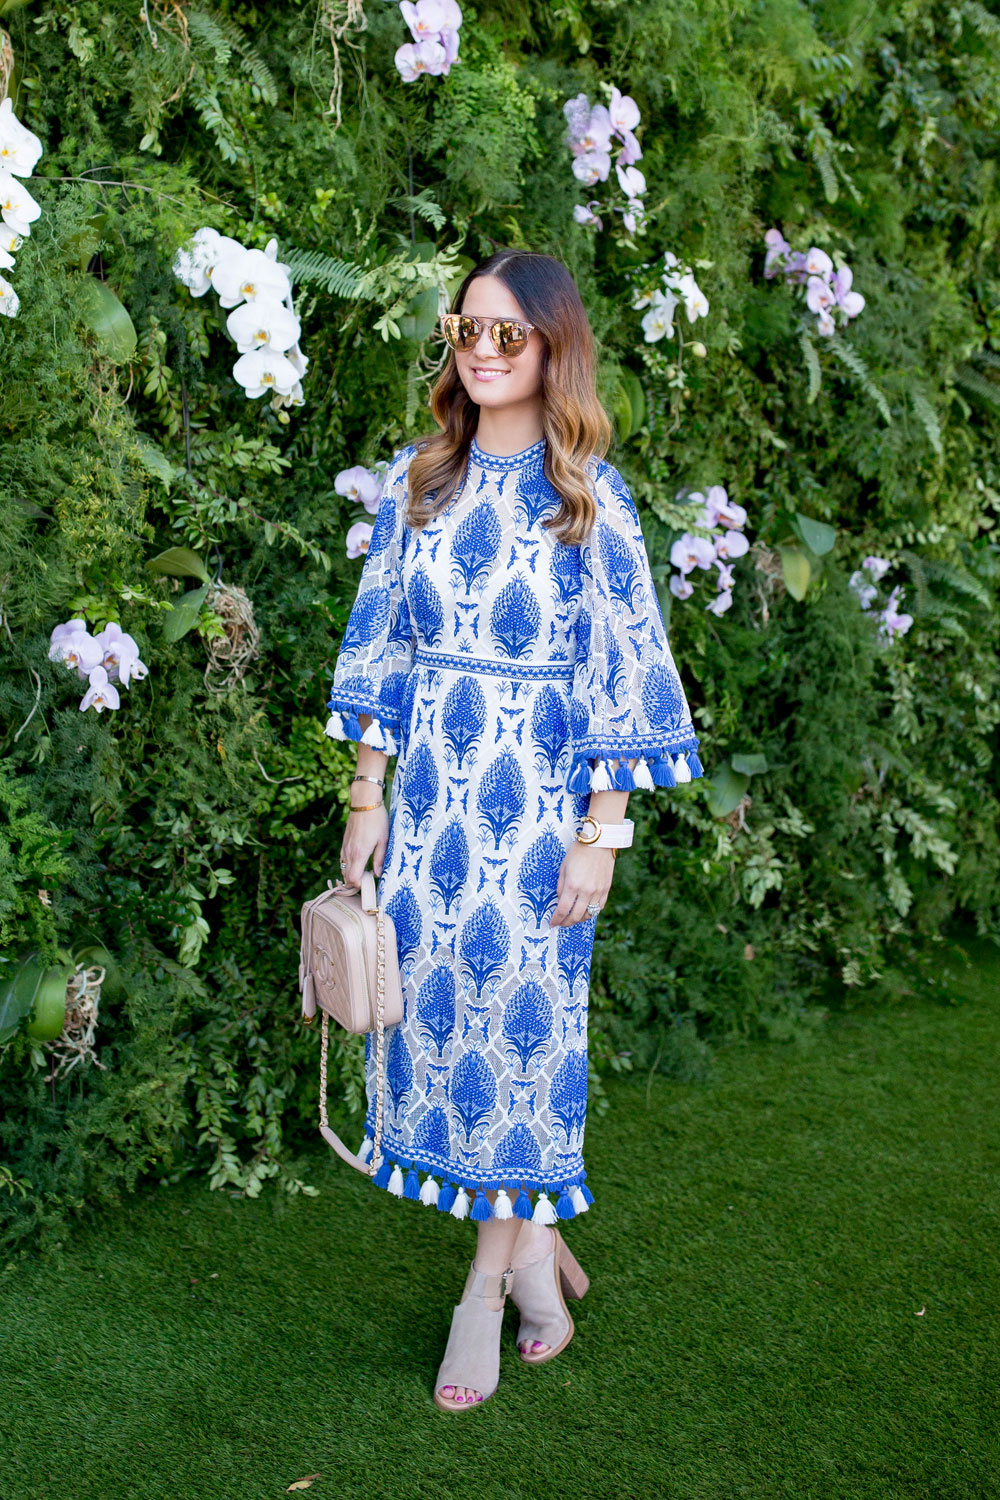 Veuve Clicquot Polo Classic Los Angeles Blogger